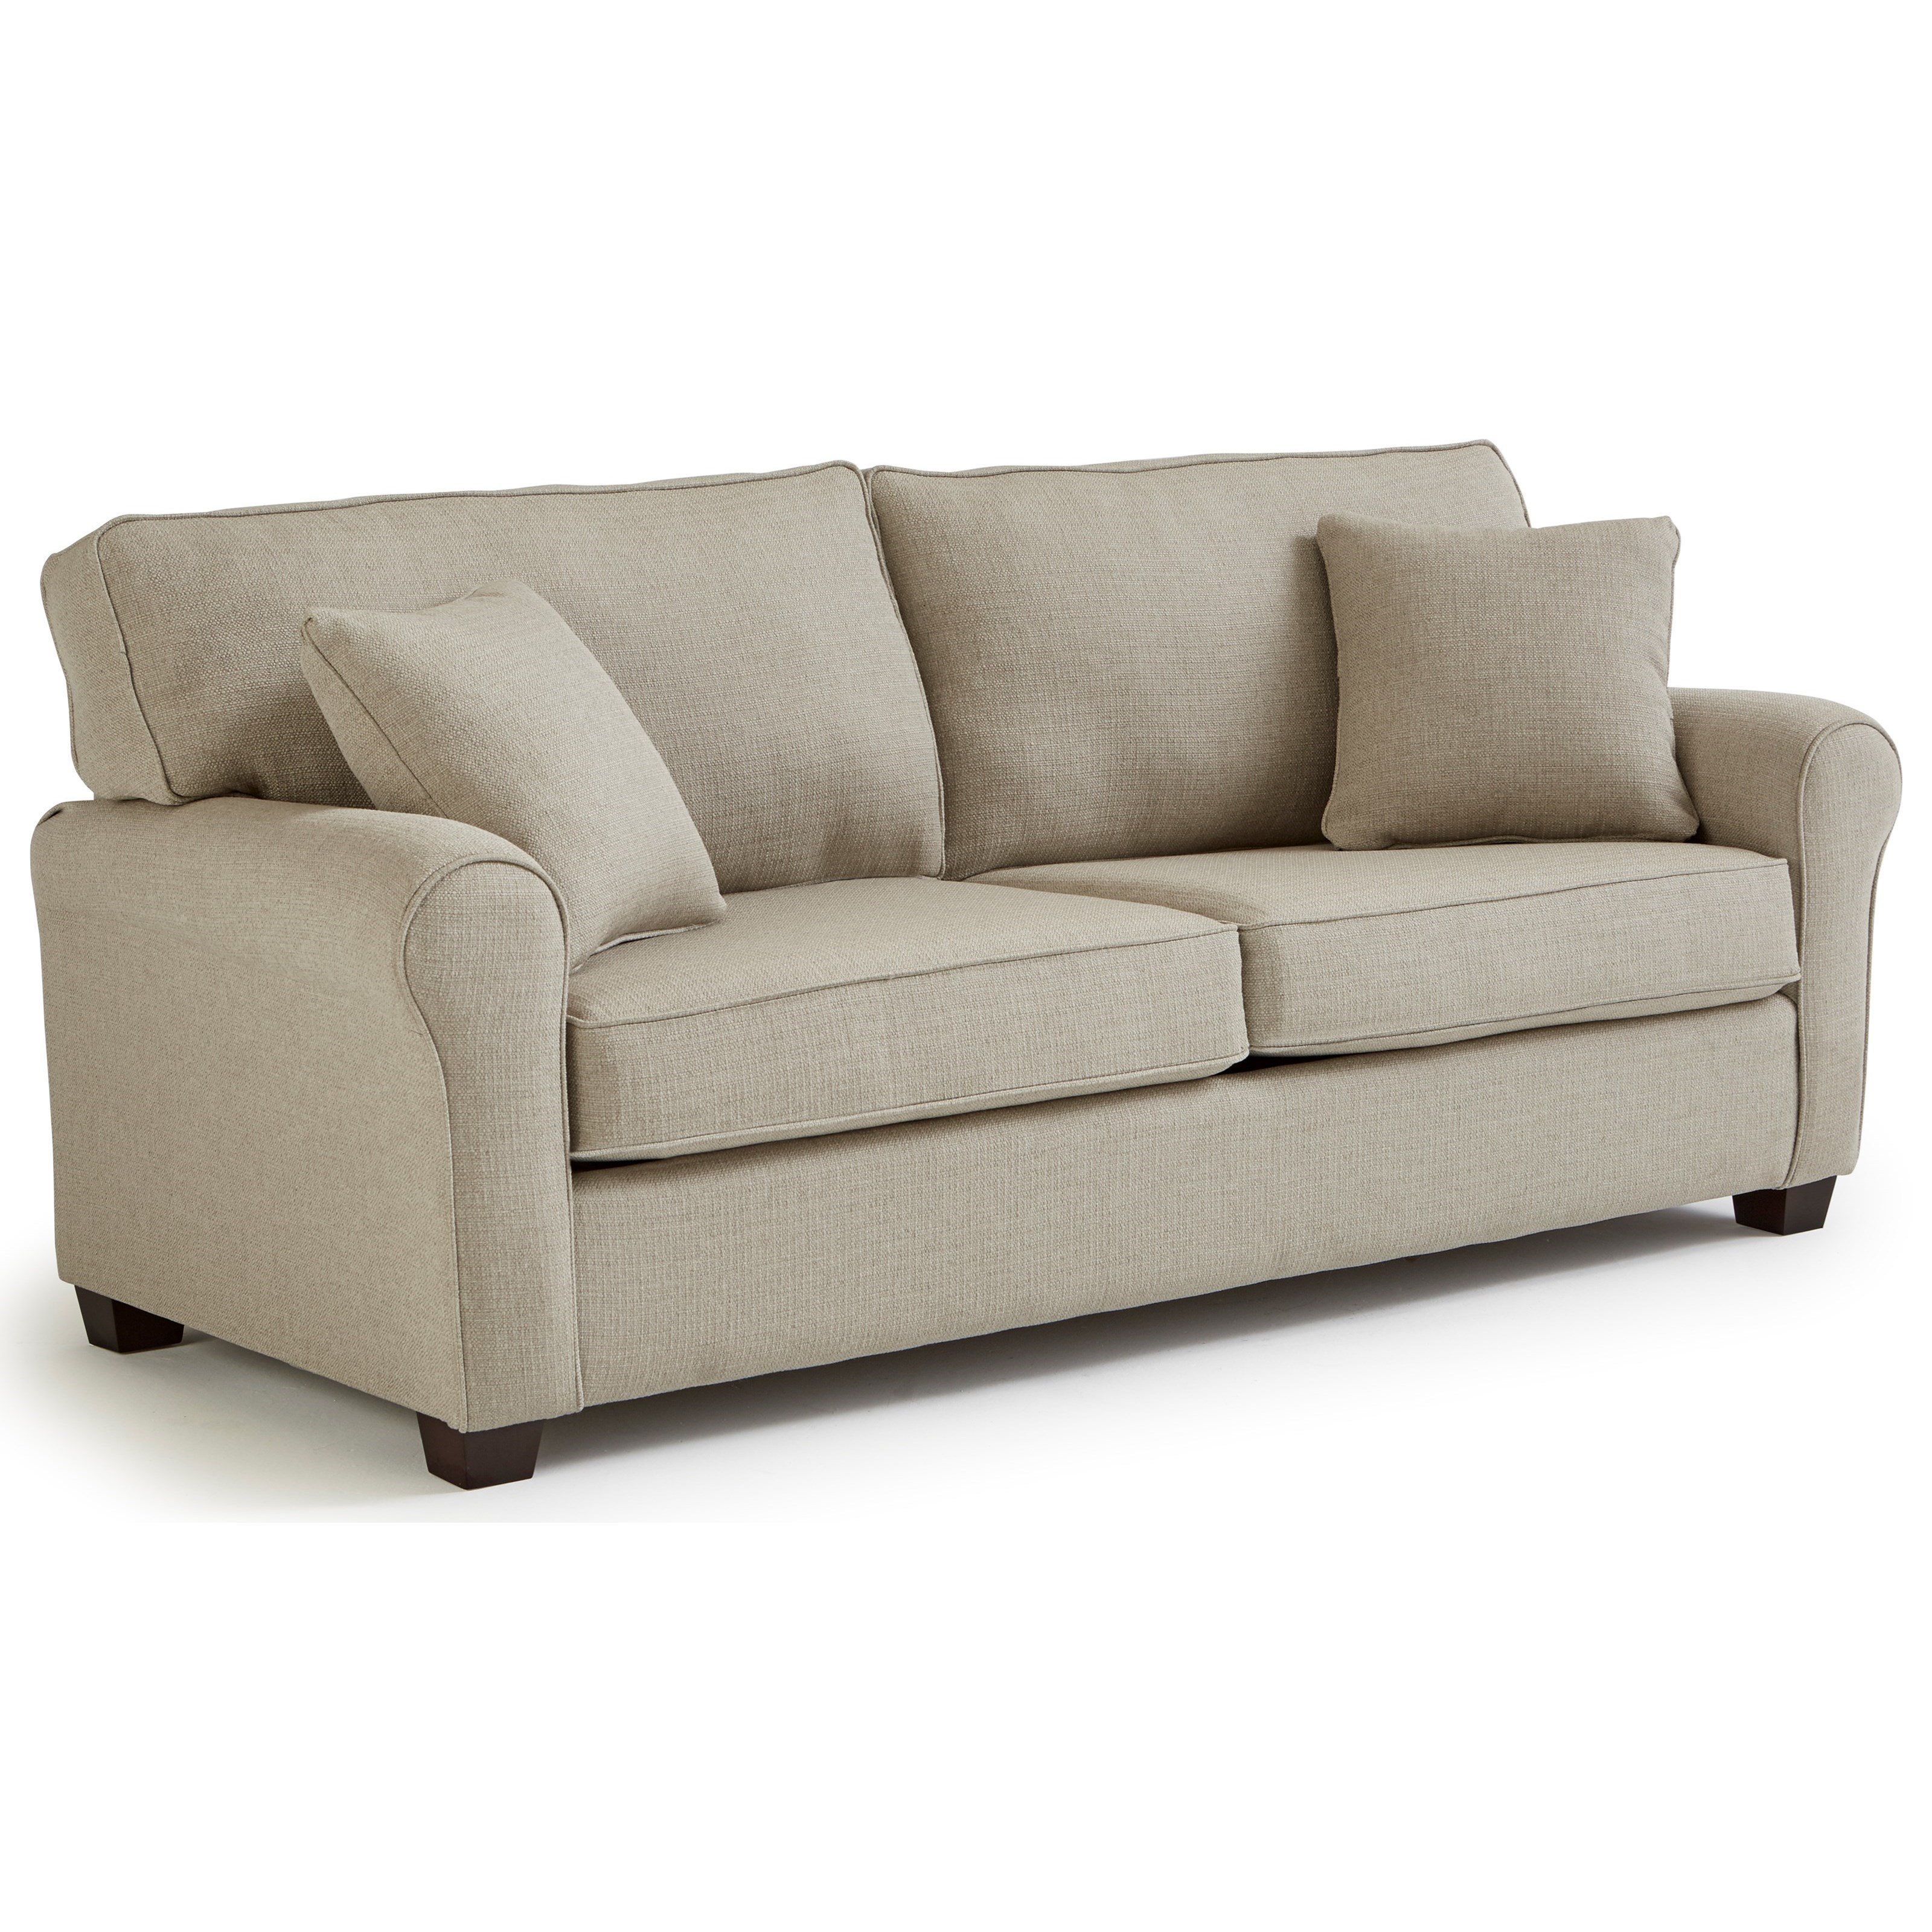 Best Home Furnishings Shannon Queen Sofa Sleepr Novello Home Furnishings Sleeper Sofas